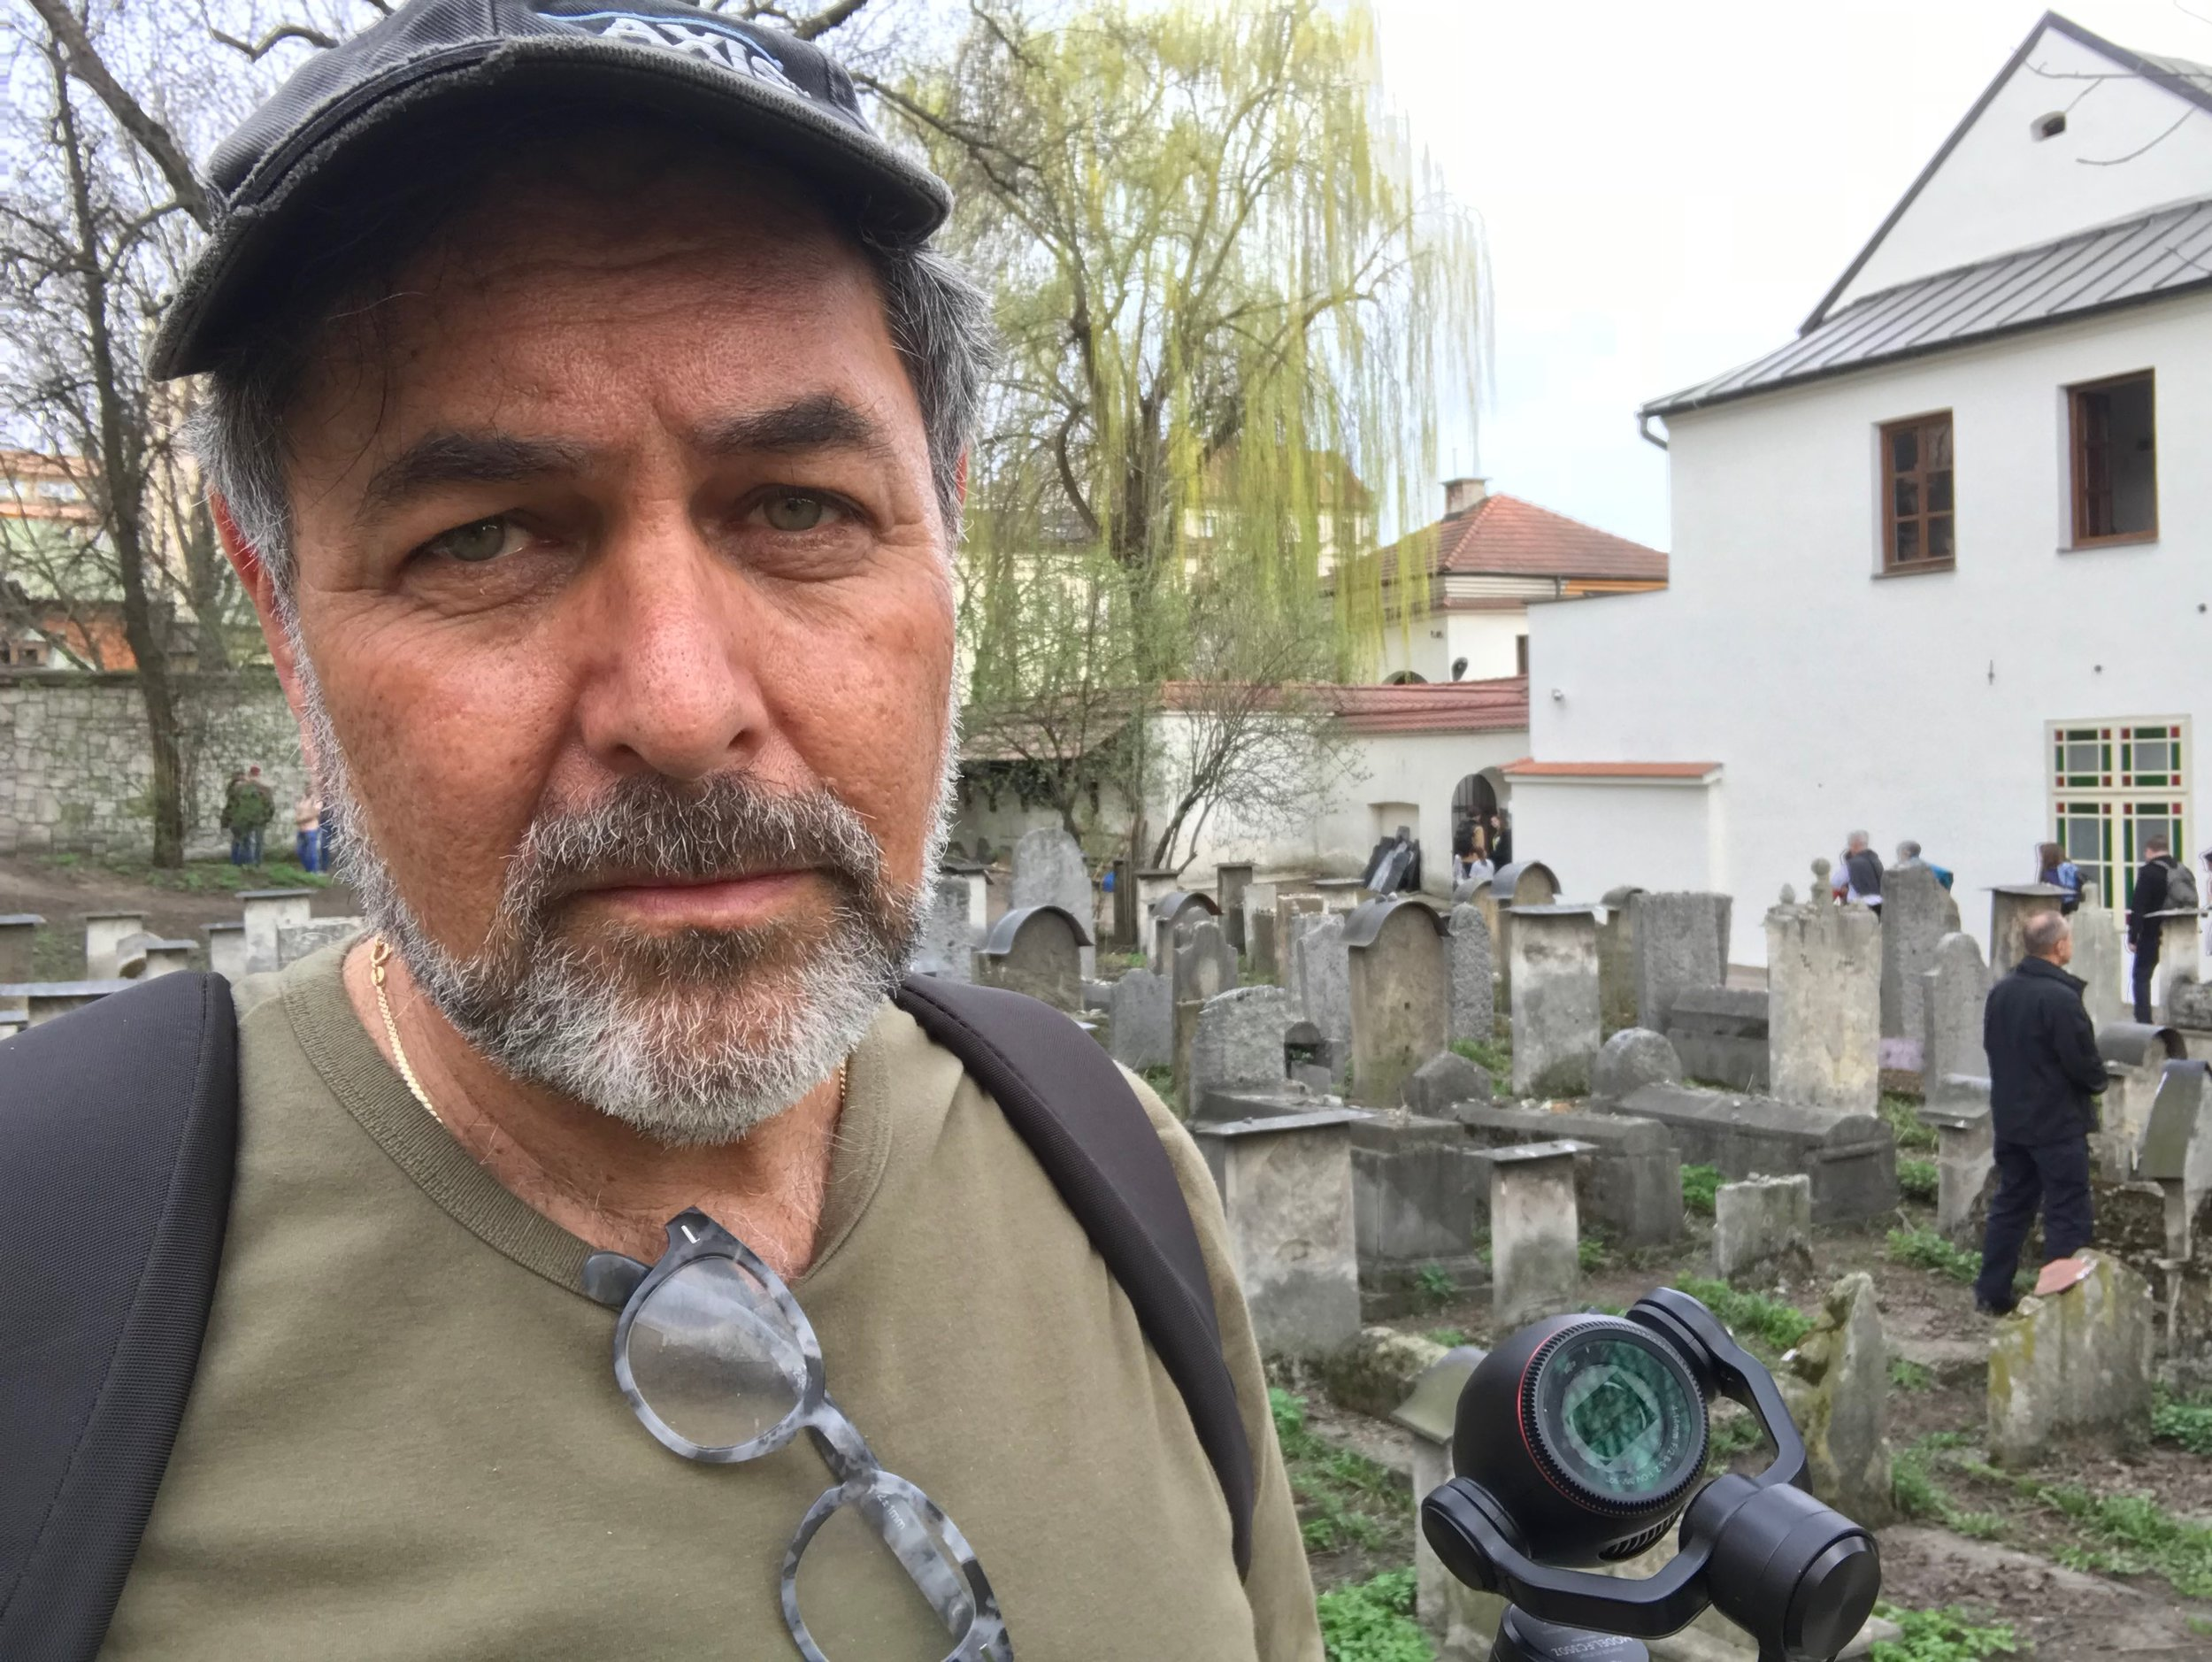 Jerry Levine on location filming in Poland - the Remah Synagogue can be seen behind him. During World War II Krakow's buildings and landmarks escaped mostly unscathed. Its preservation makes it a key destination for Holocaust Survivors, students and Jewish missions, such as this one organized by the Greater Miami Jewish Federation.